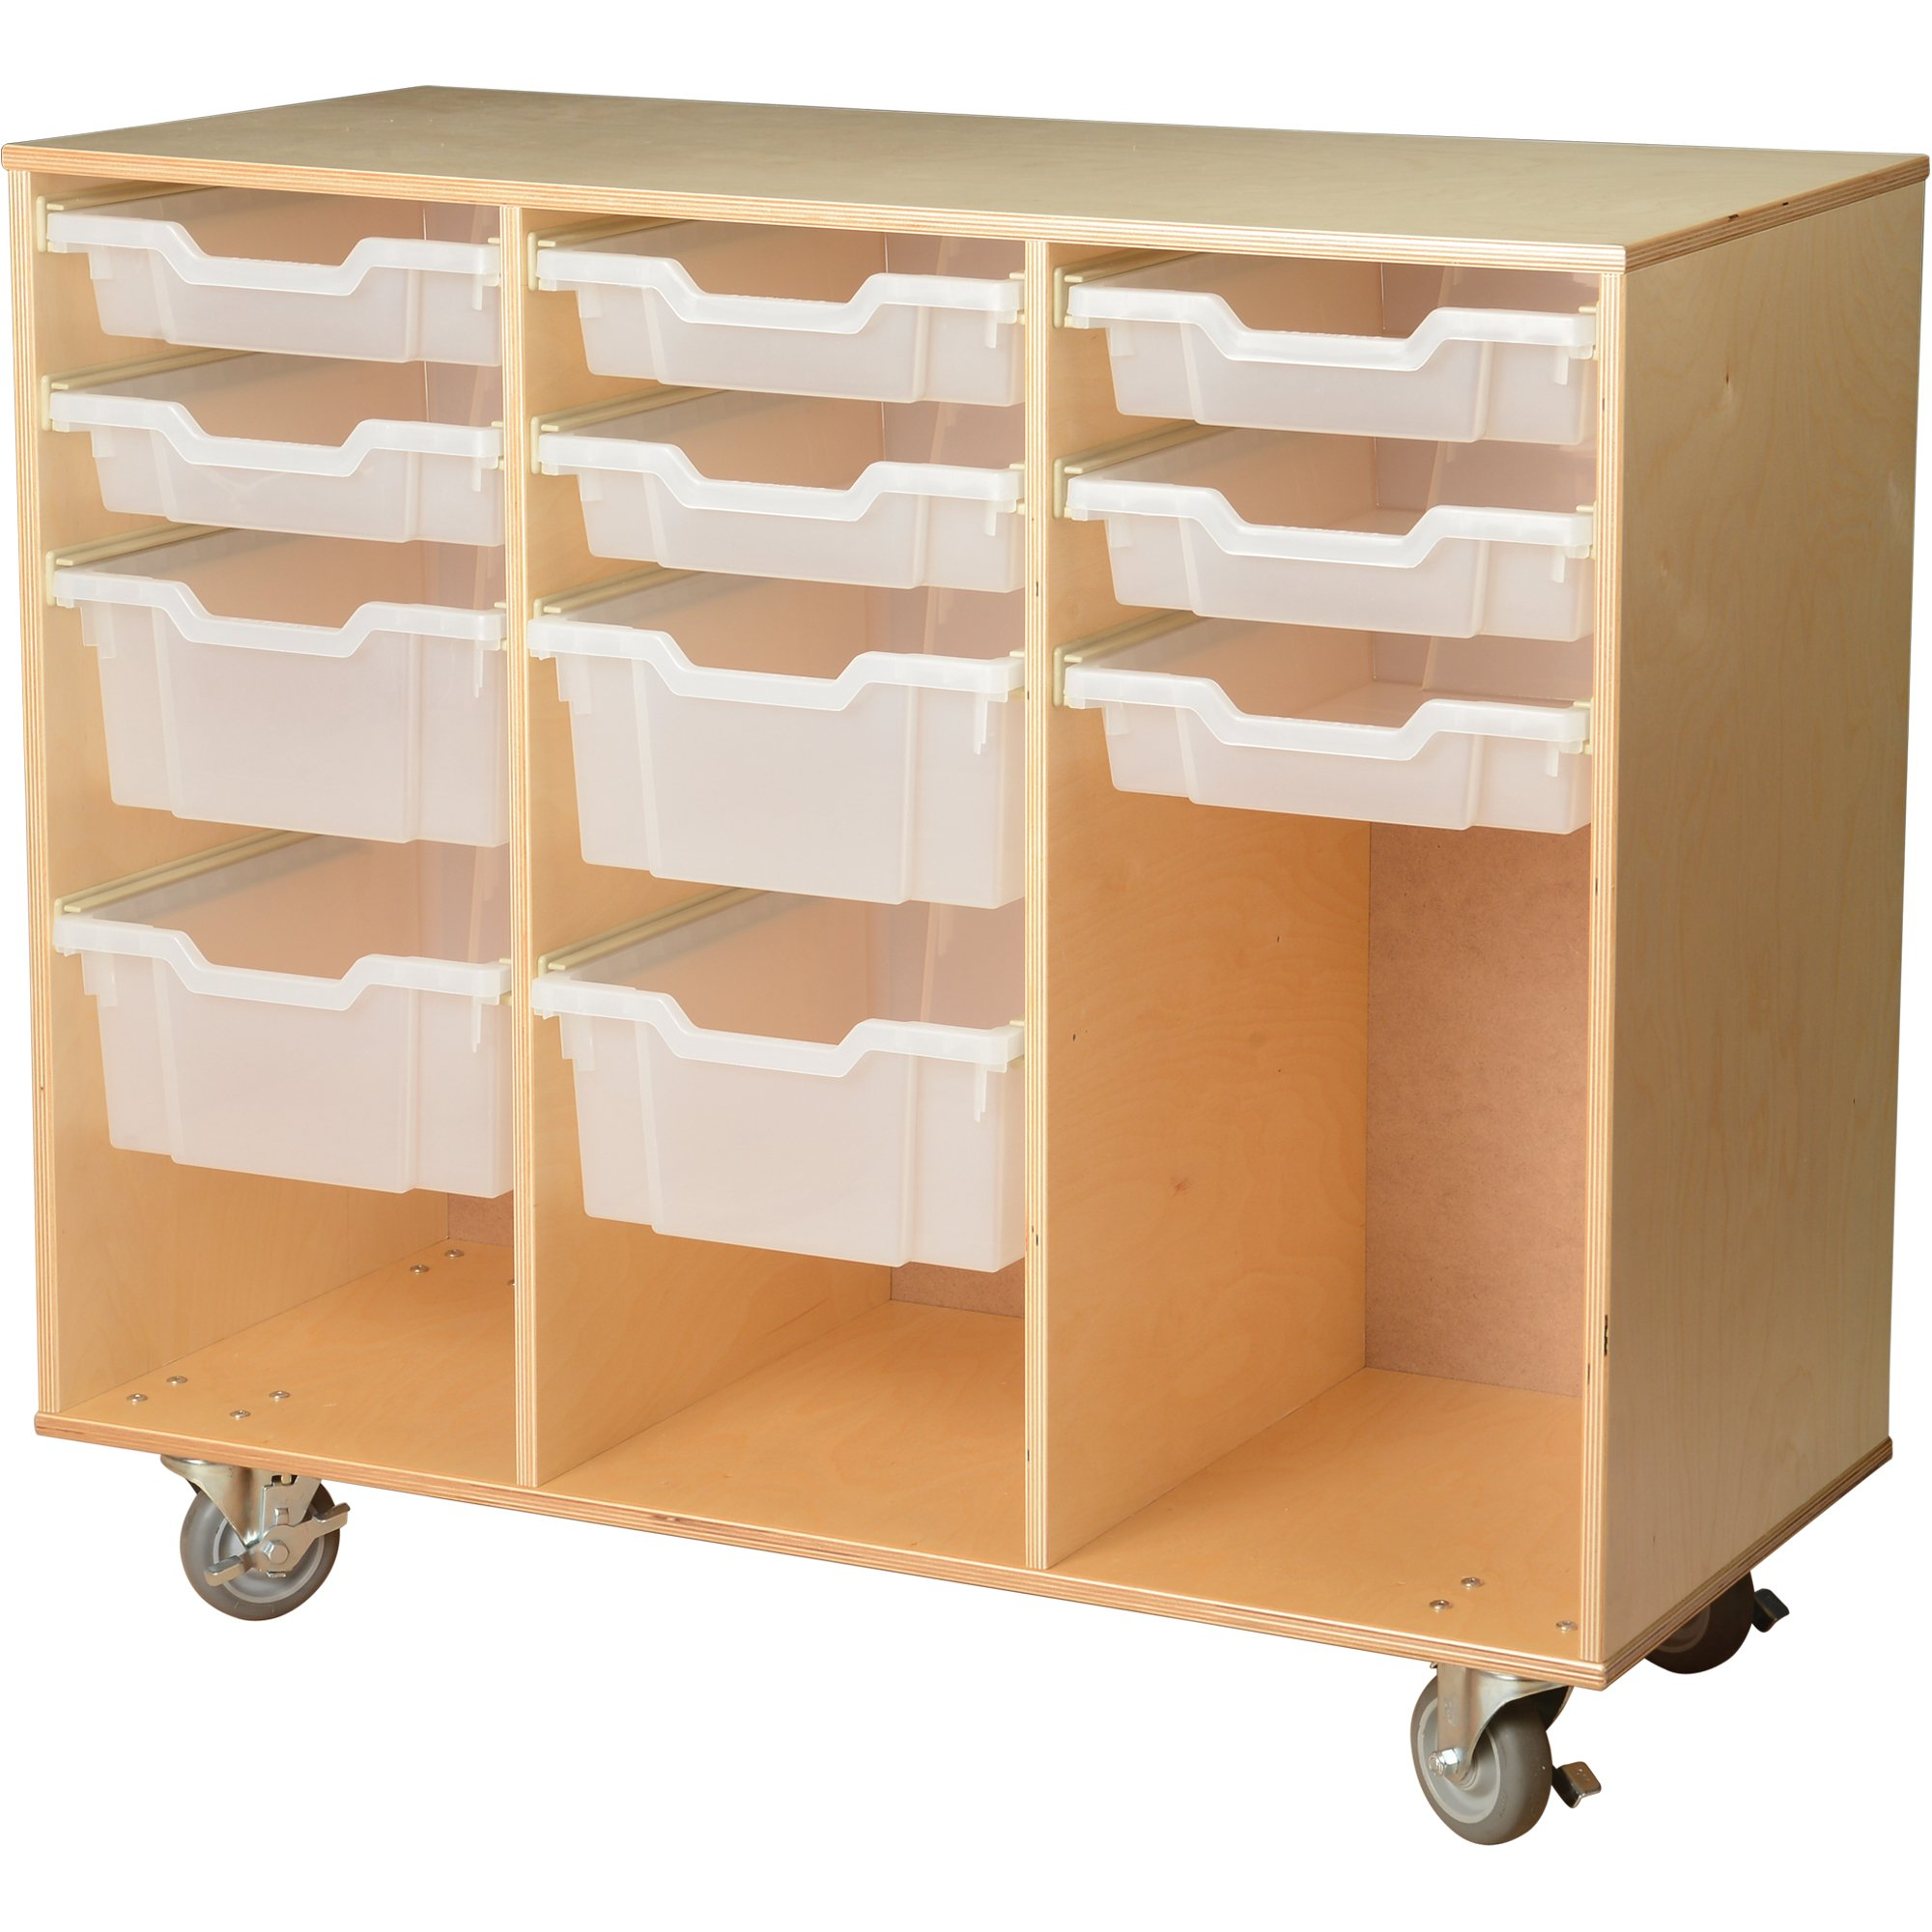 Constructive Playthings WB-740 Game and Puzzle Birch Cart with Write and Wipe Board on the Back, Grade: kindergarten to 6, Brown